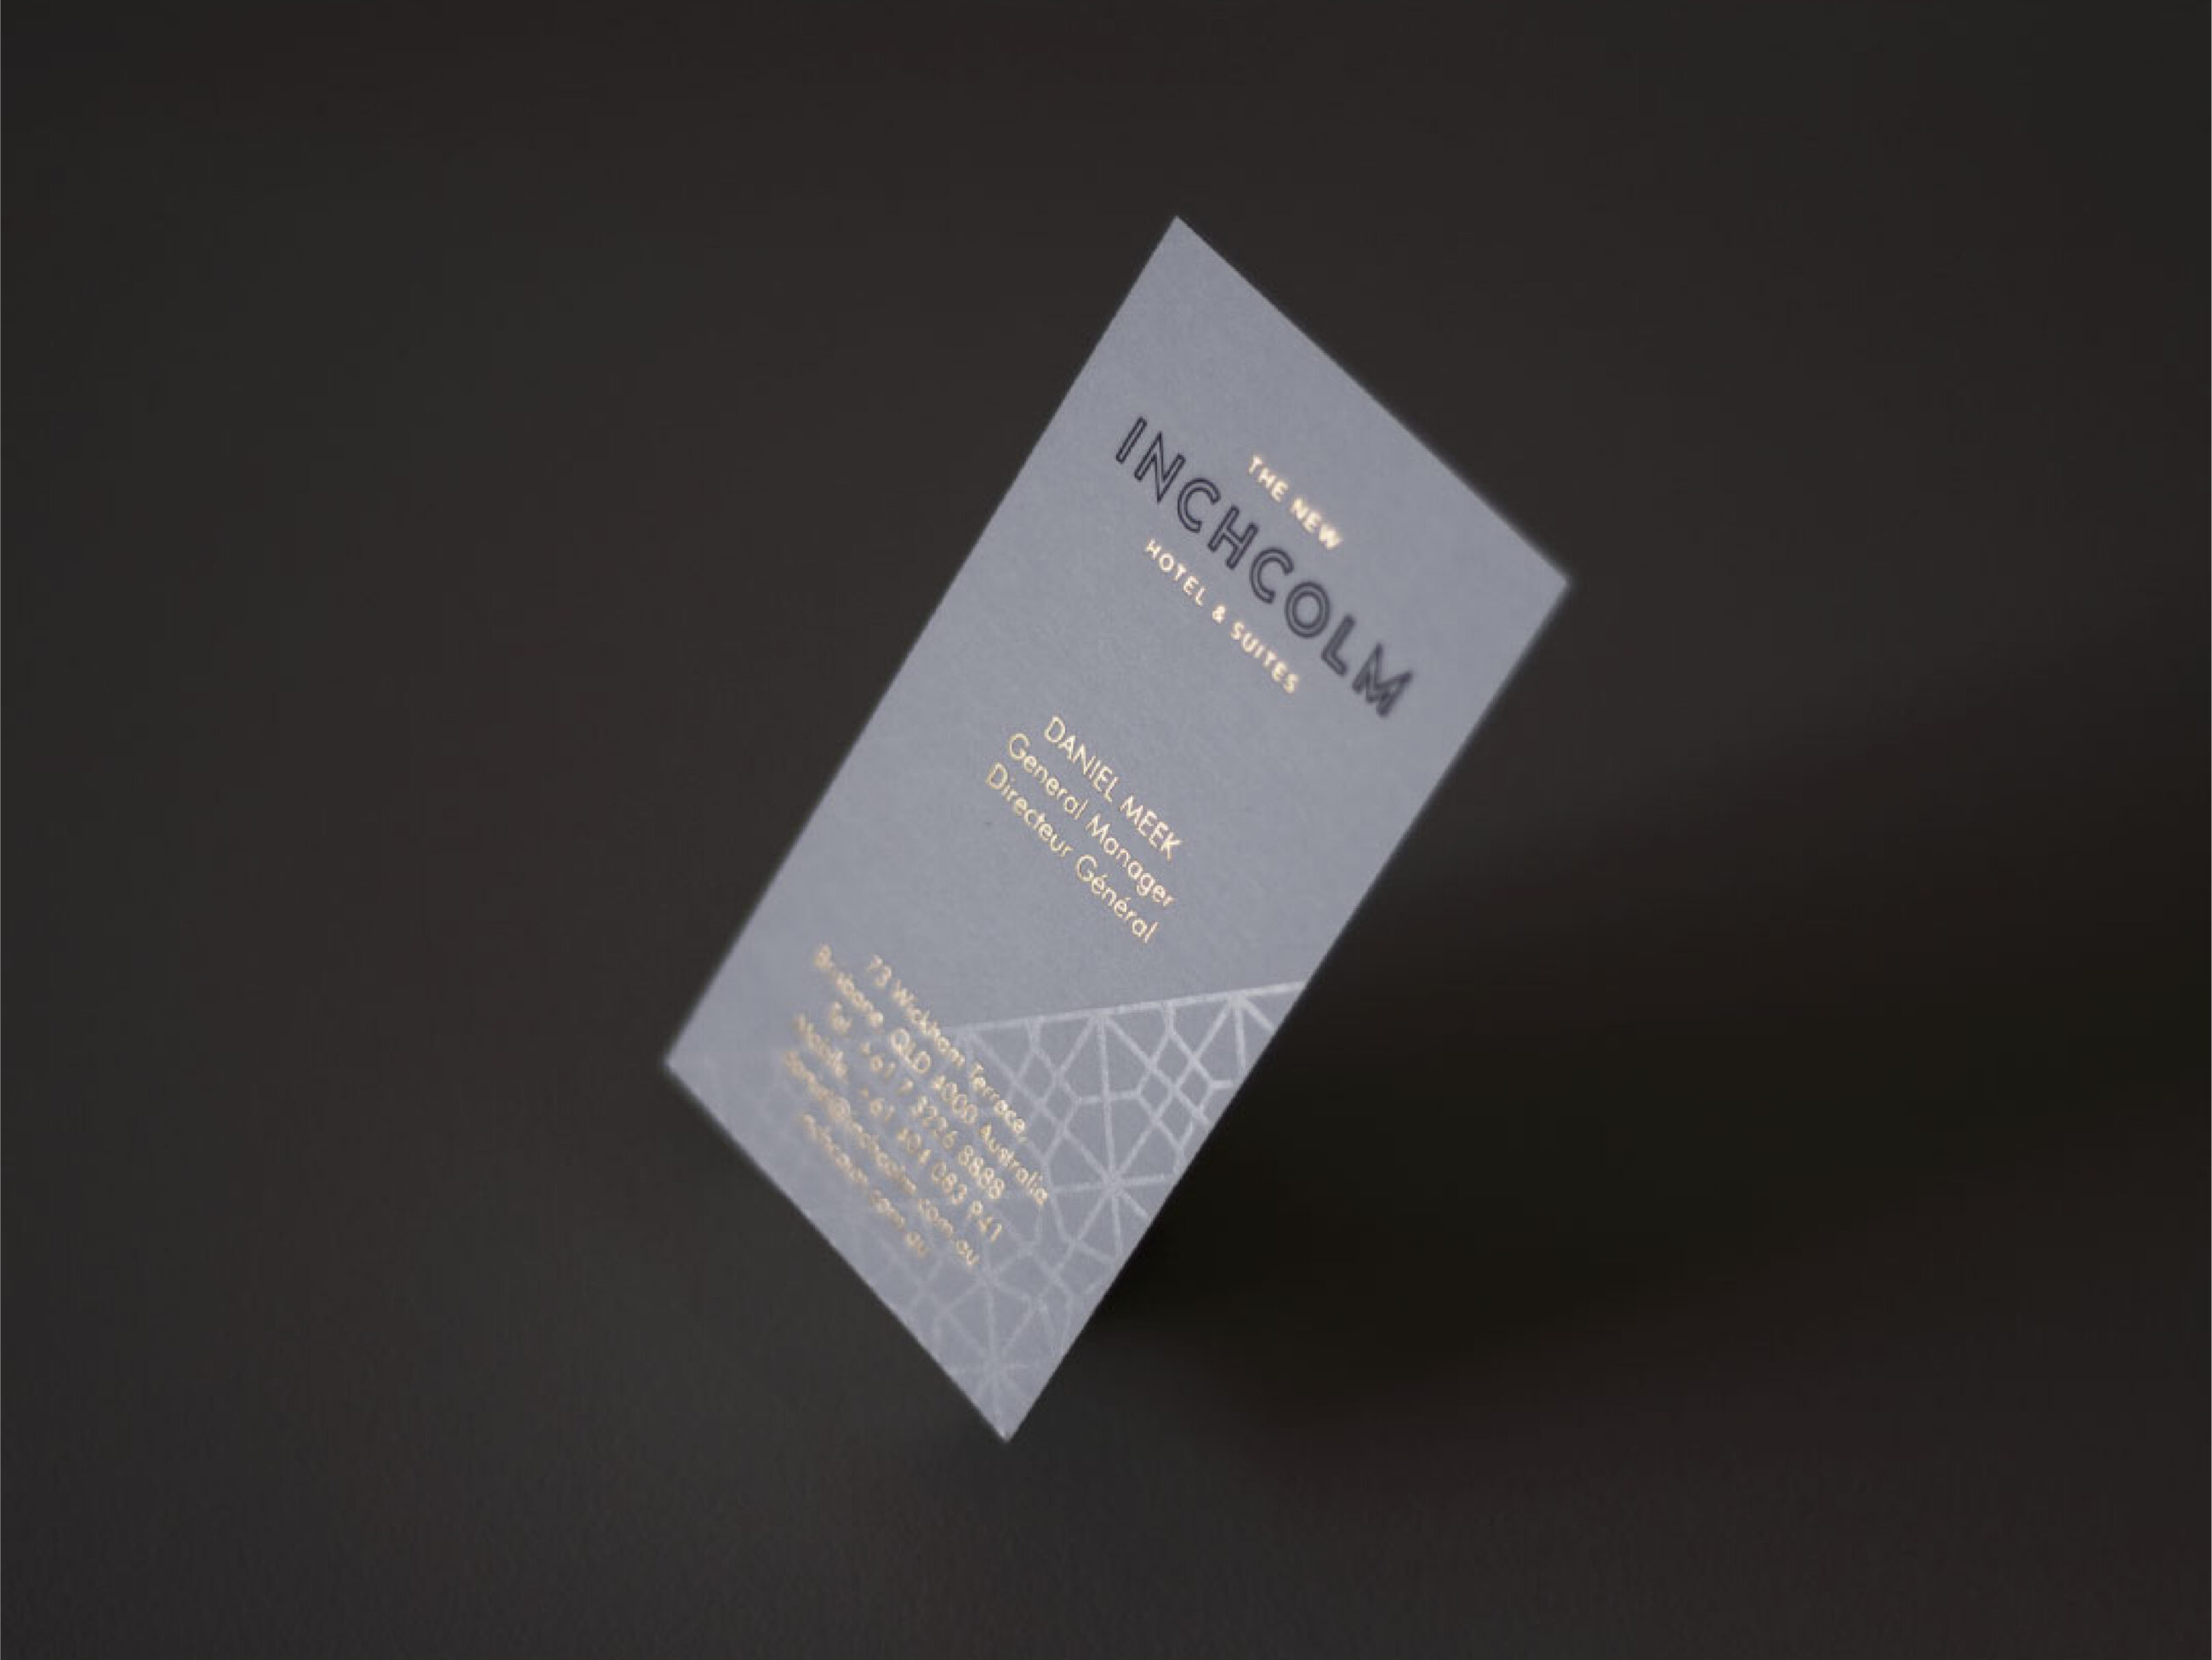 Inchcolm Hotel - Business card